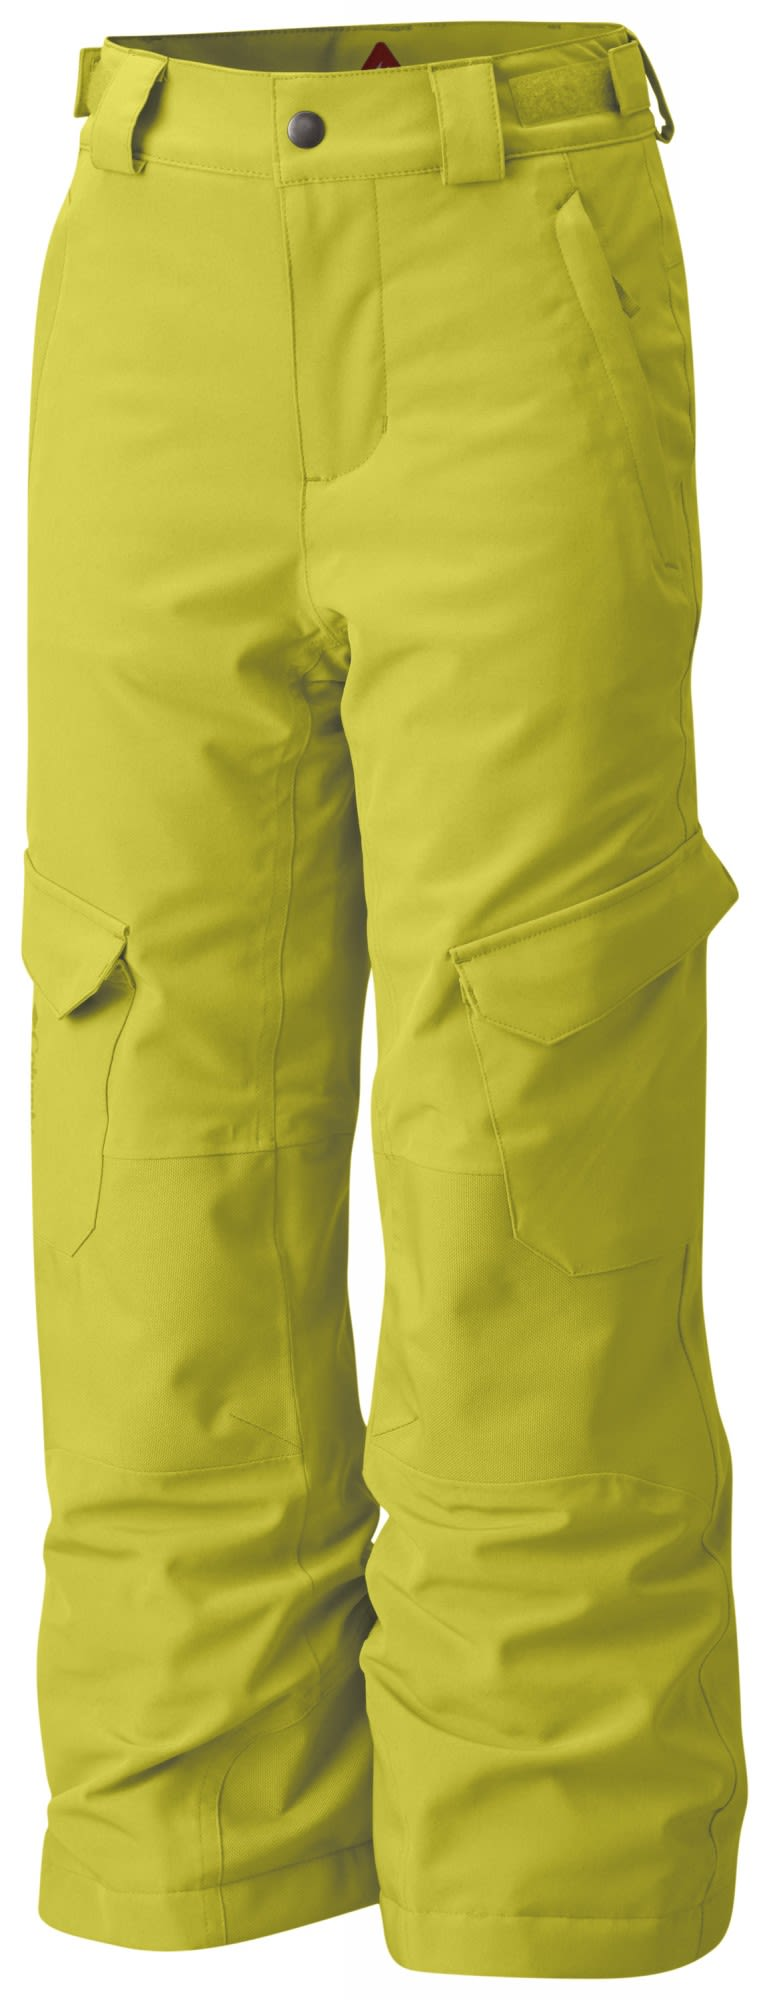 Columbia Boys Empowder Pant | Kinder Hose